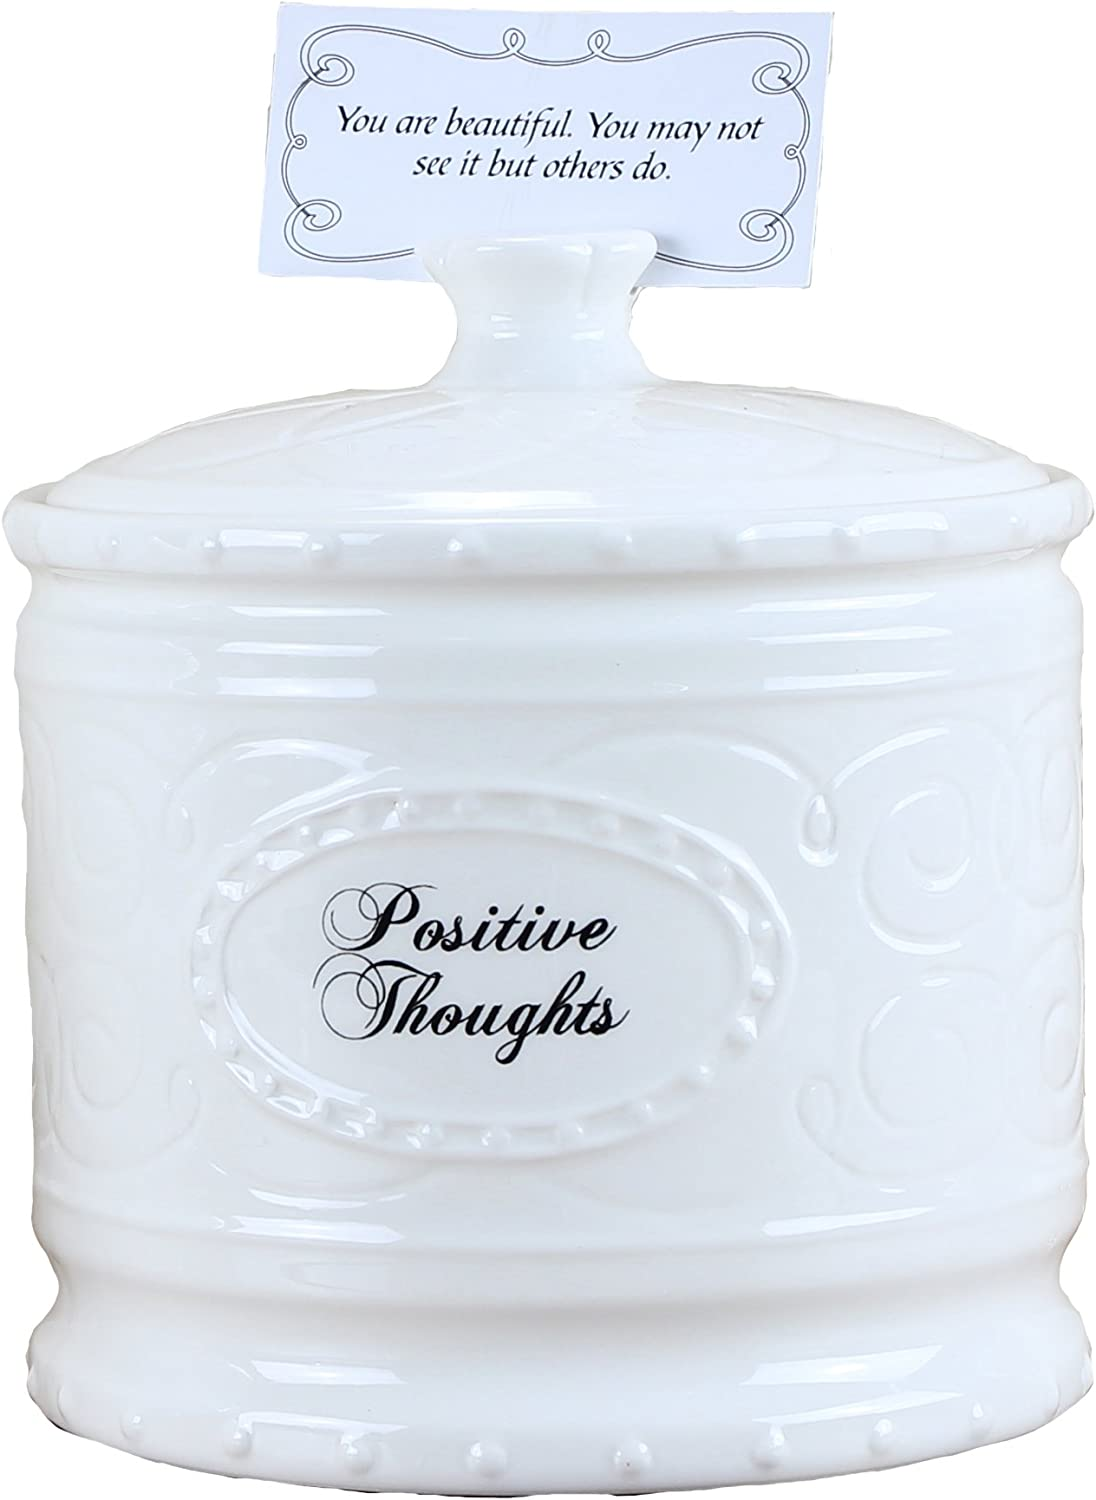 """Young's 6.25"""" Ceramic Jar with 365 Positive Thoughts"""